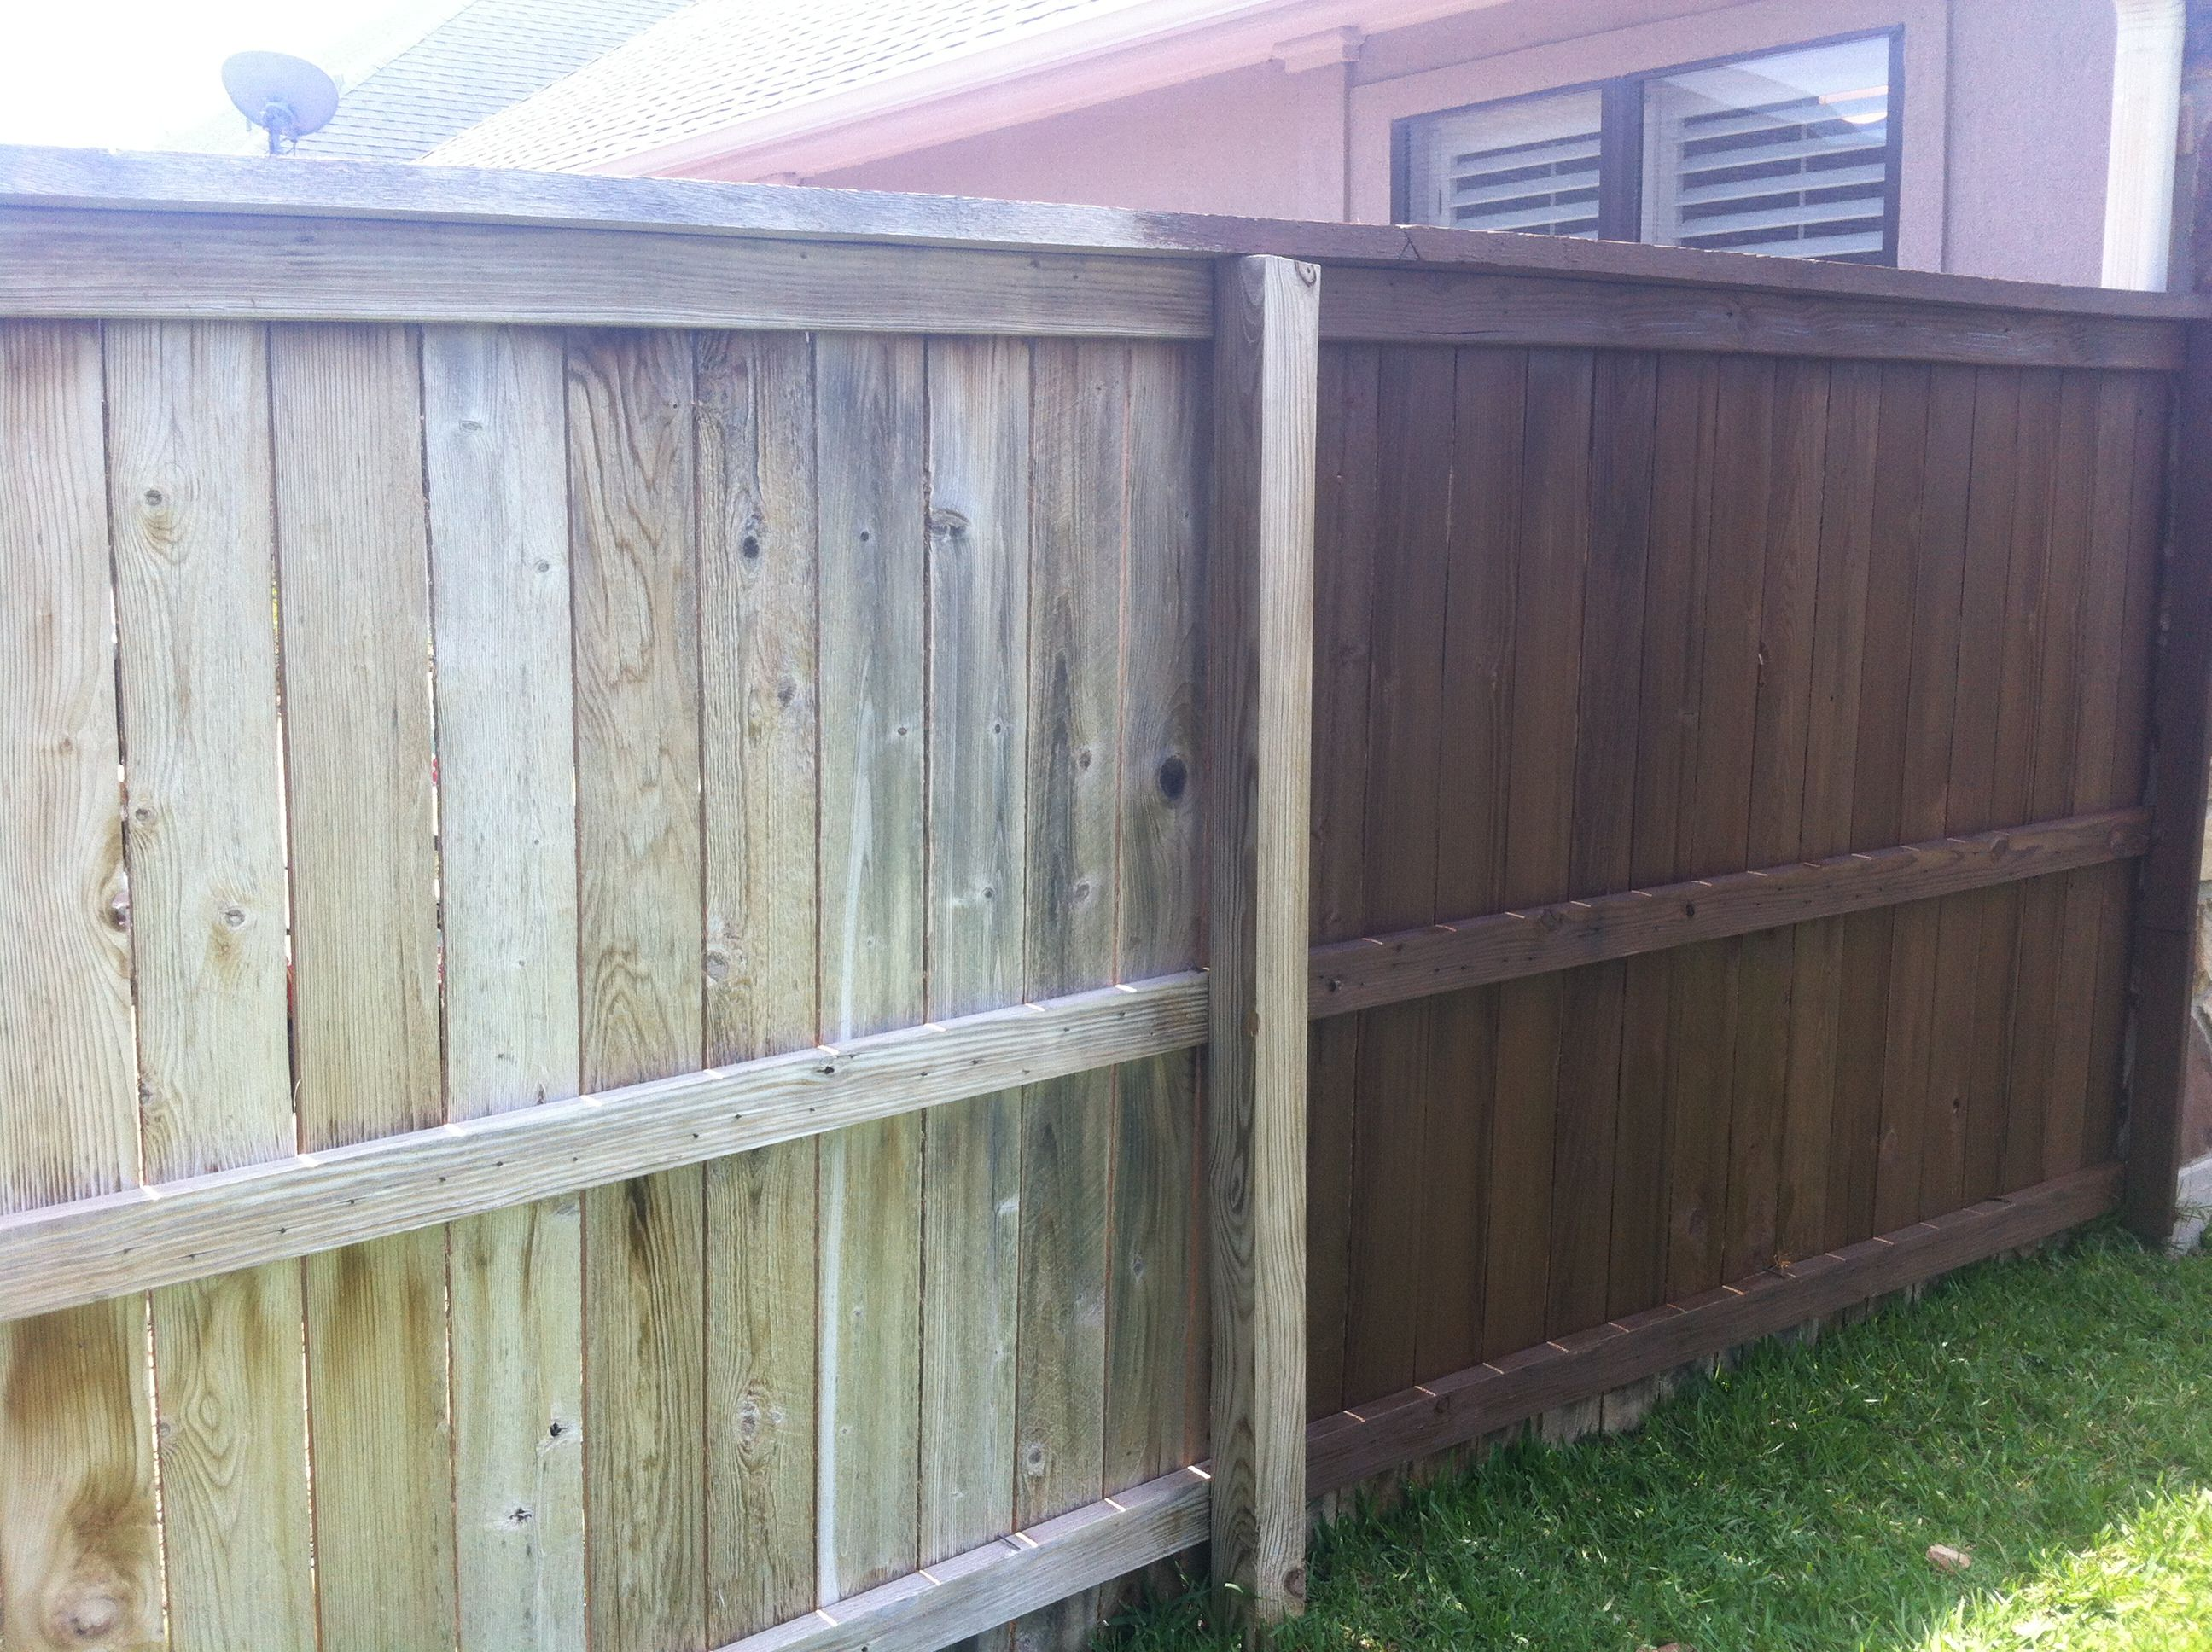 Staining a wood fence with sprayer for wood stain fences staining a wood fence with sprayer for wood stain baanklon Images